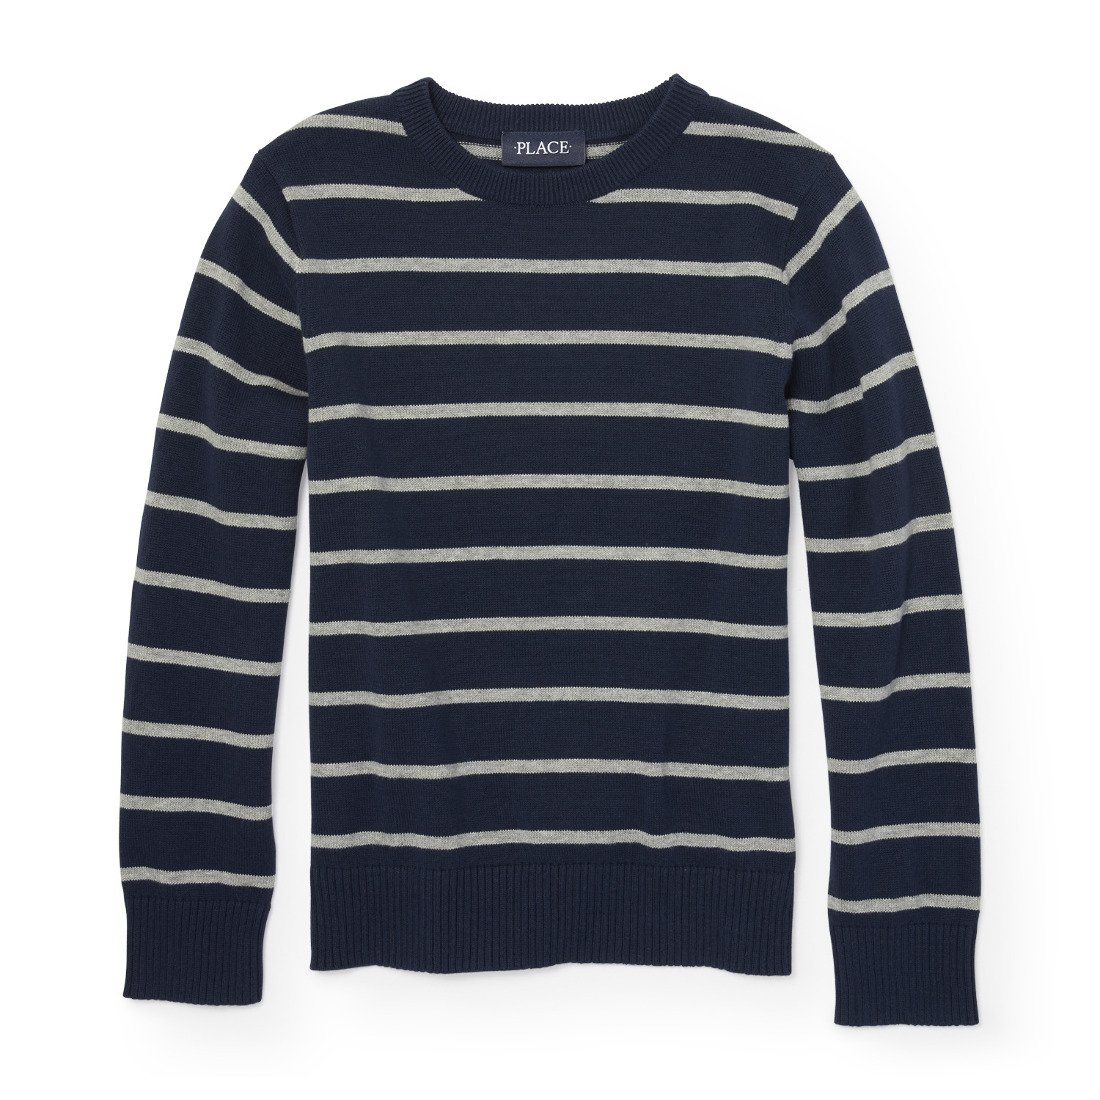 The Children's Place Boys' Sweaters 19 2094061